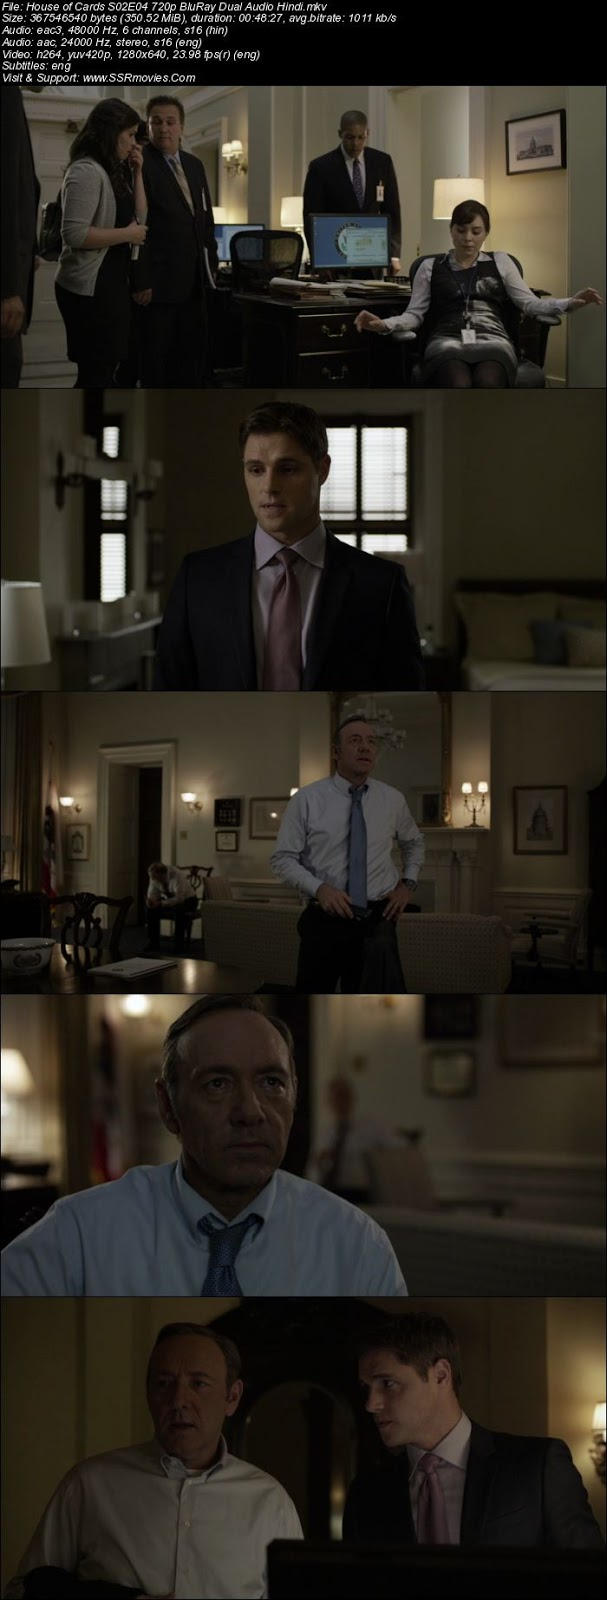 House of Cards Season 2 All Episodes Dual Audio Hindi 720p